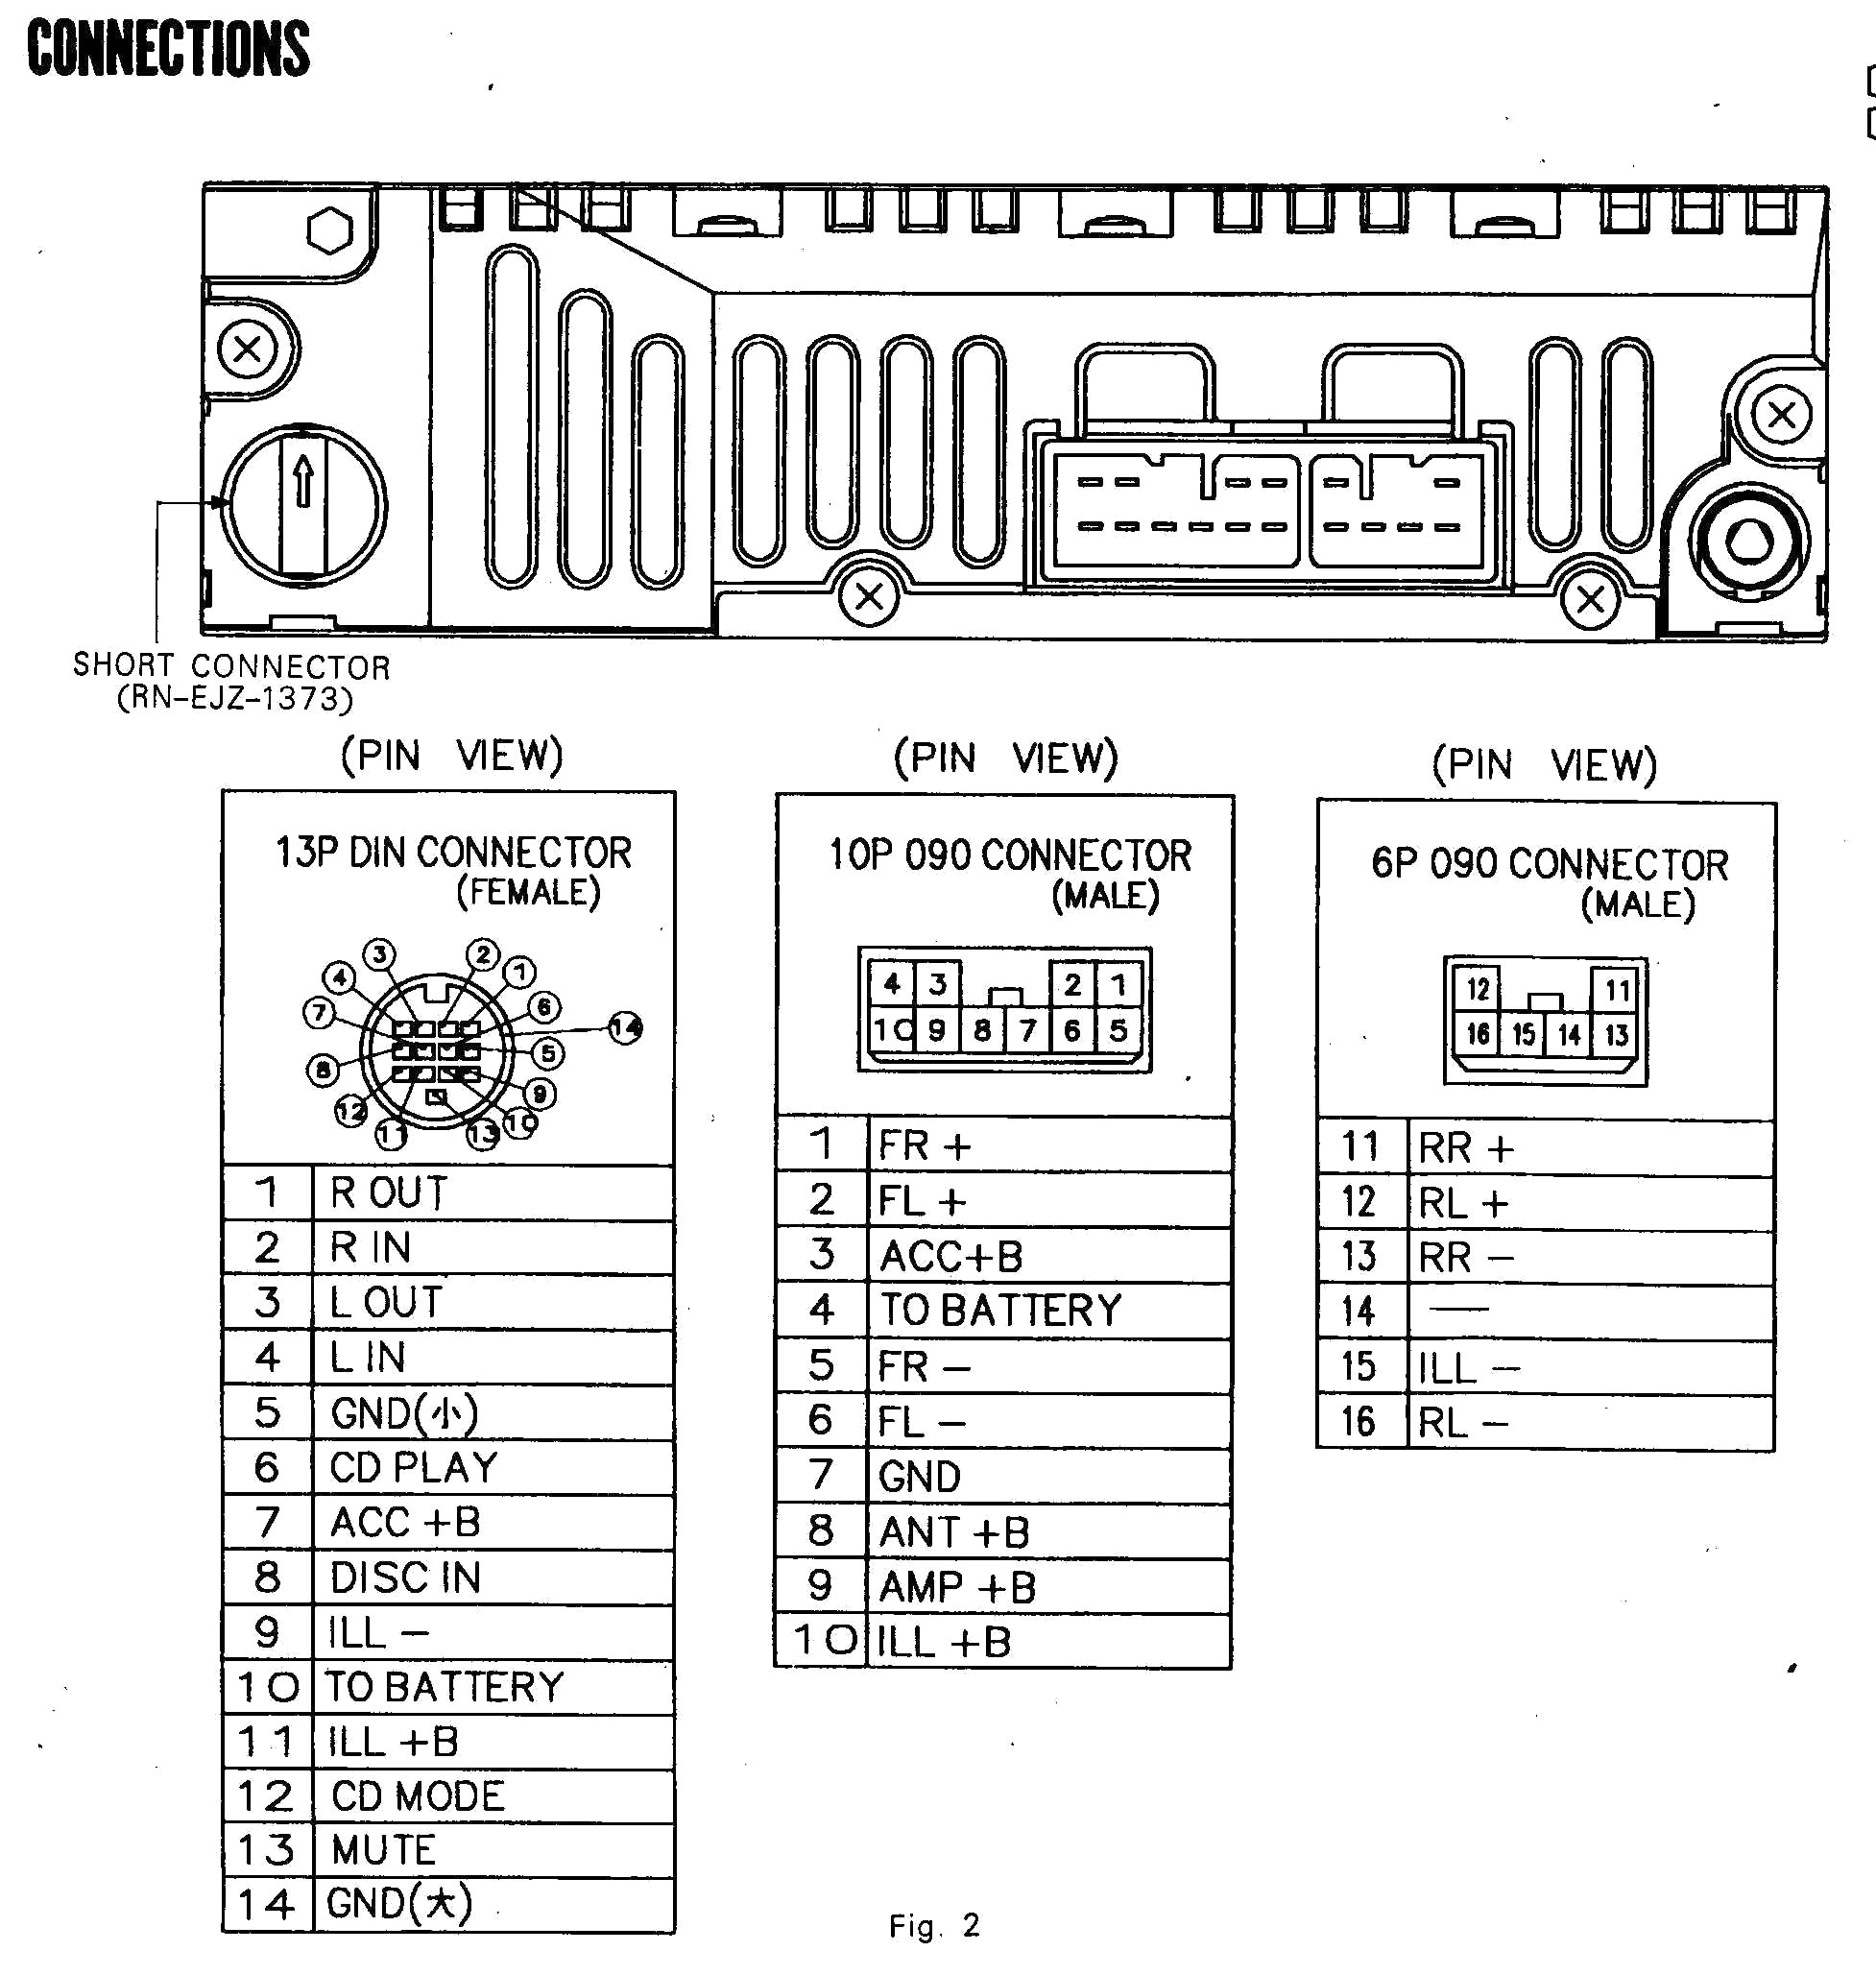 Pioneer Deh 1600 Wiring Diagram Wiring Diagram for A Pioneer Deh 150mp Audio Beauteous Avic N3 to Of Pioneer Deh 1600 Wiring Diagram